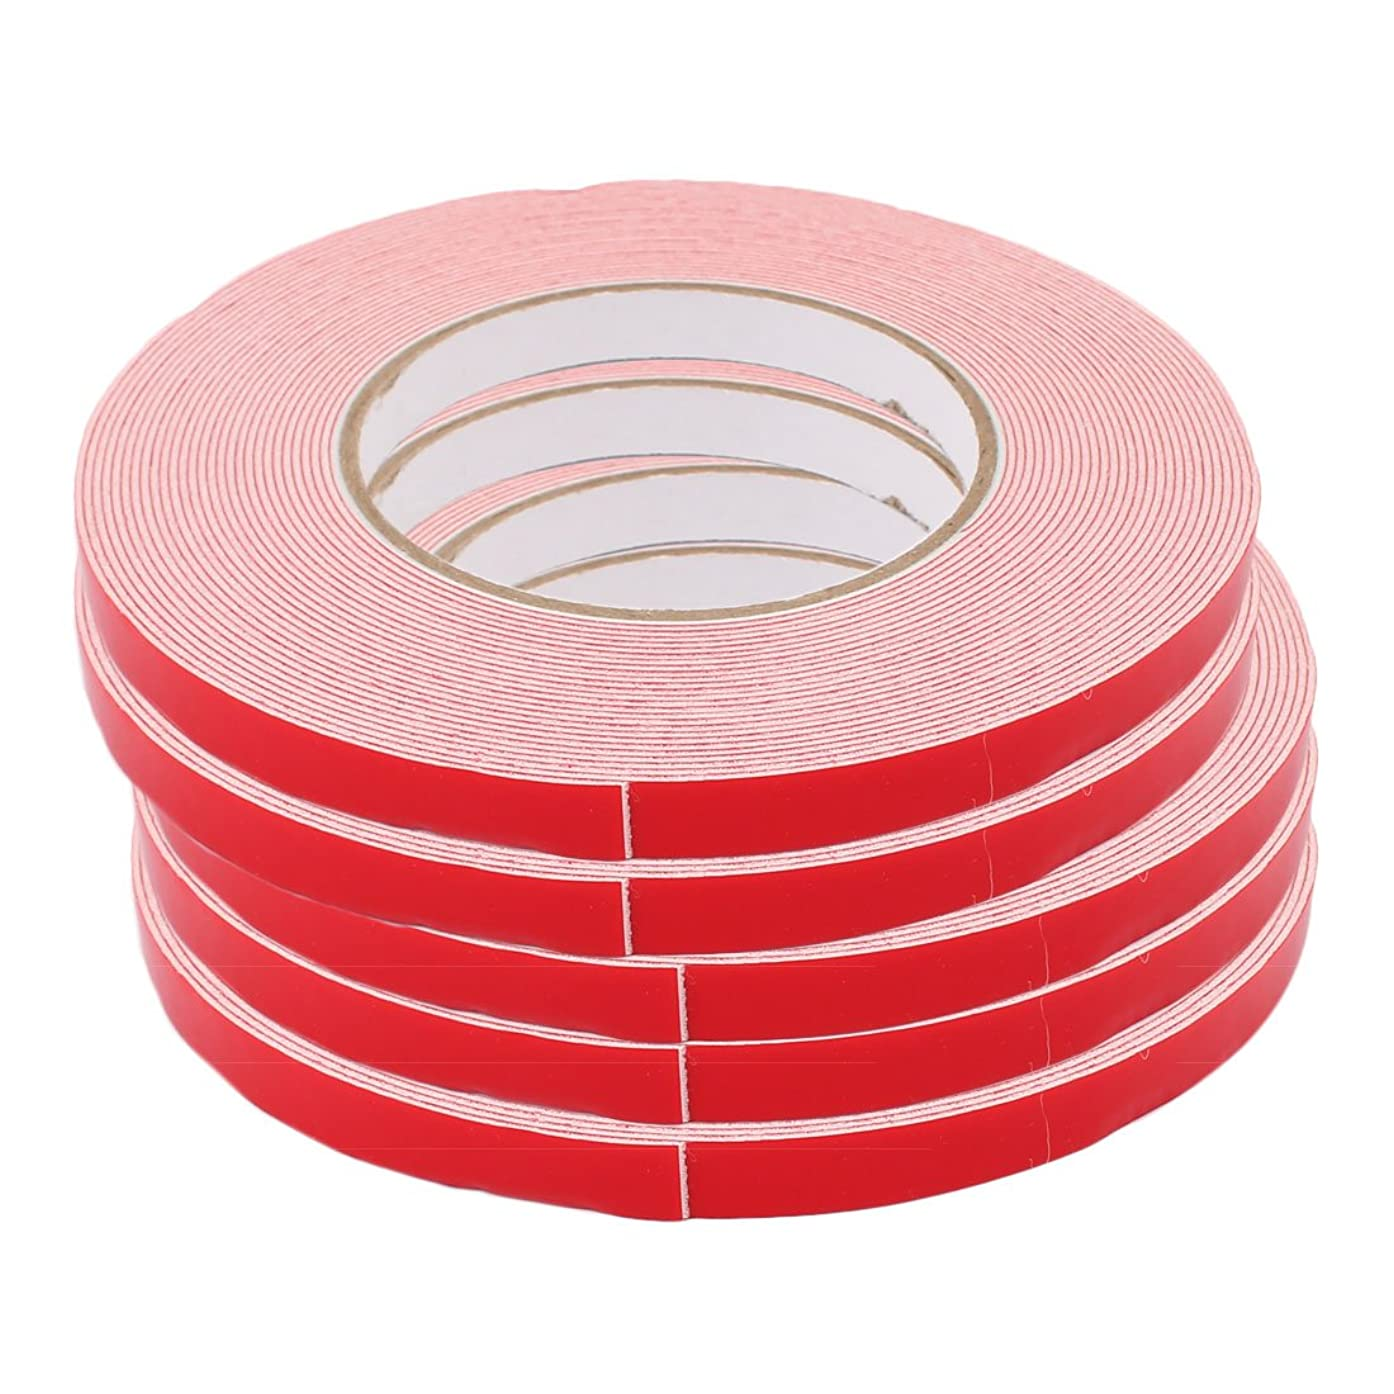 uxcell 5 Pcs 10M Length 10mm Dual Side Adhesive White PE Foam Tape for LED Board